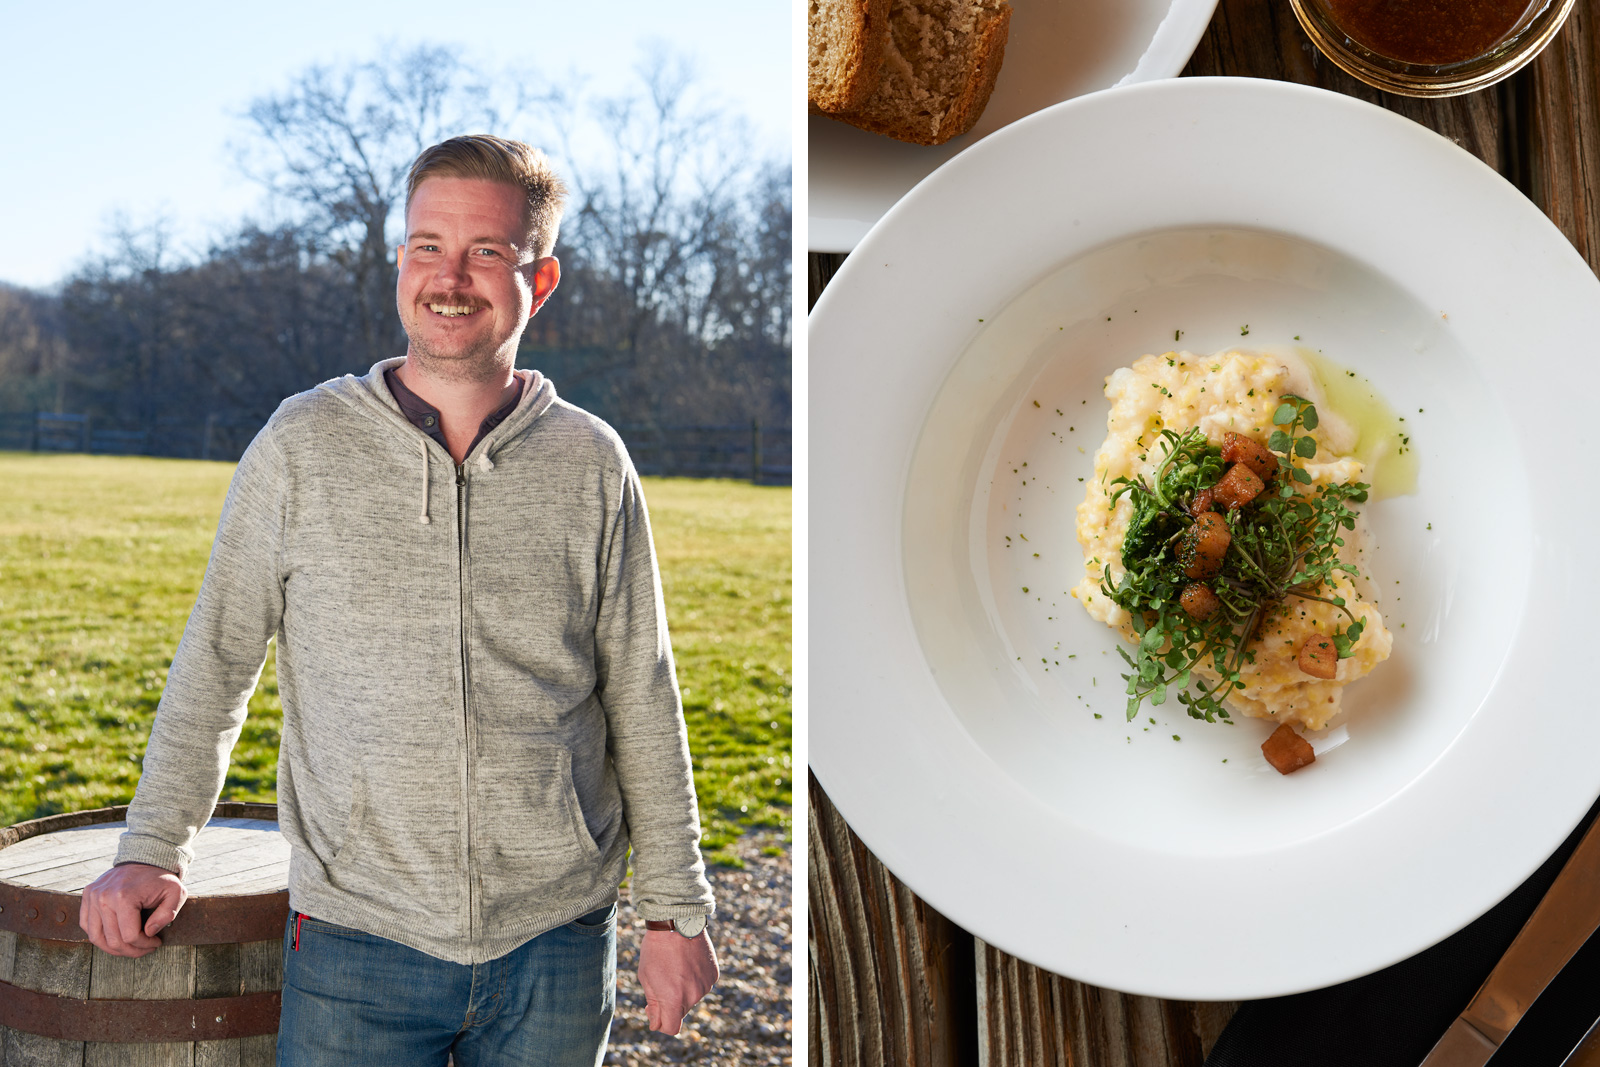 Chef Matt Dawes, Hominy porridge with Creasy Greens & Fatback by chef Matt Dawes